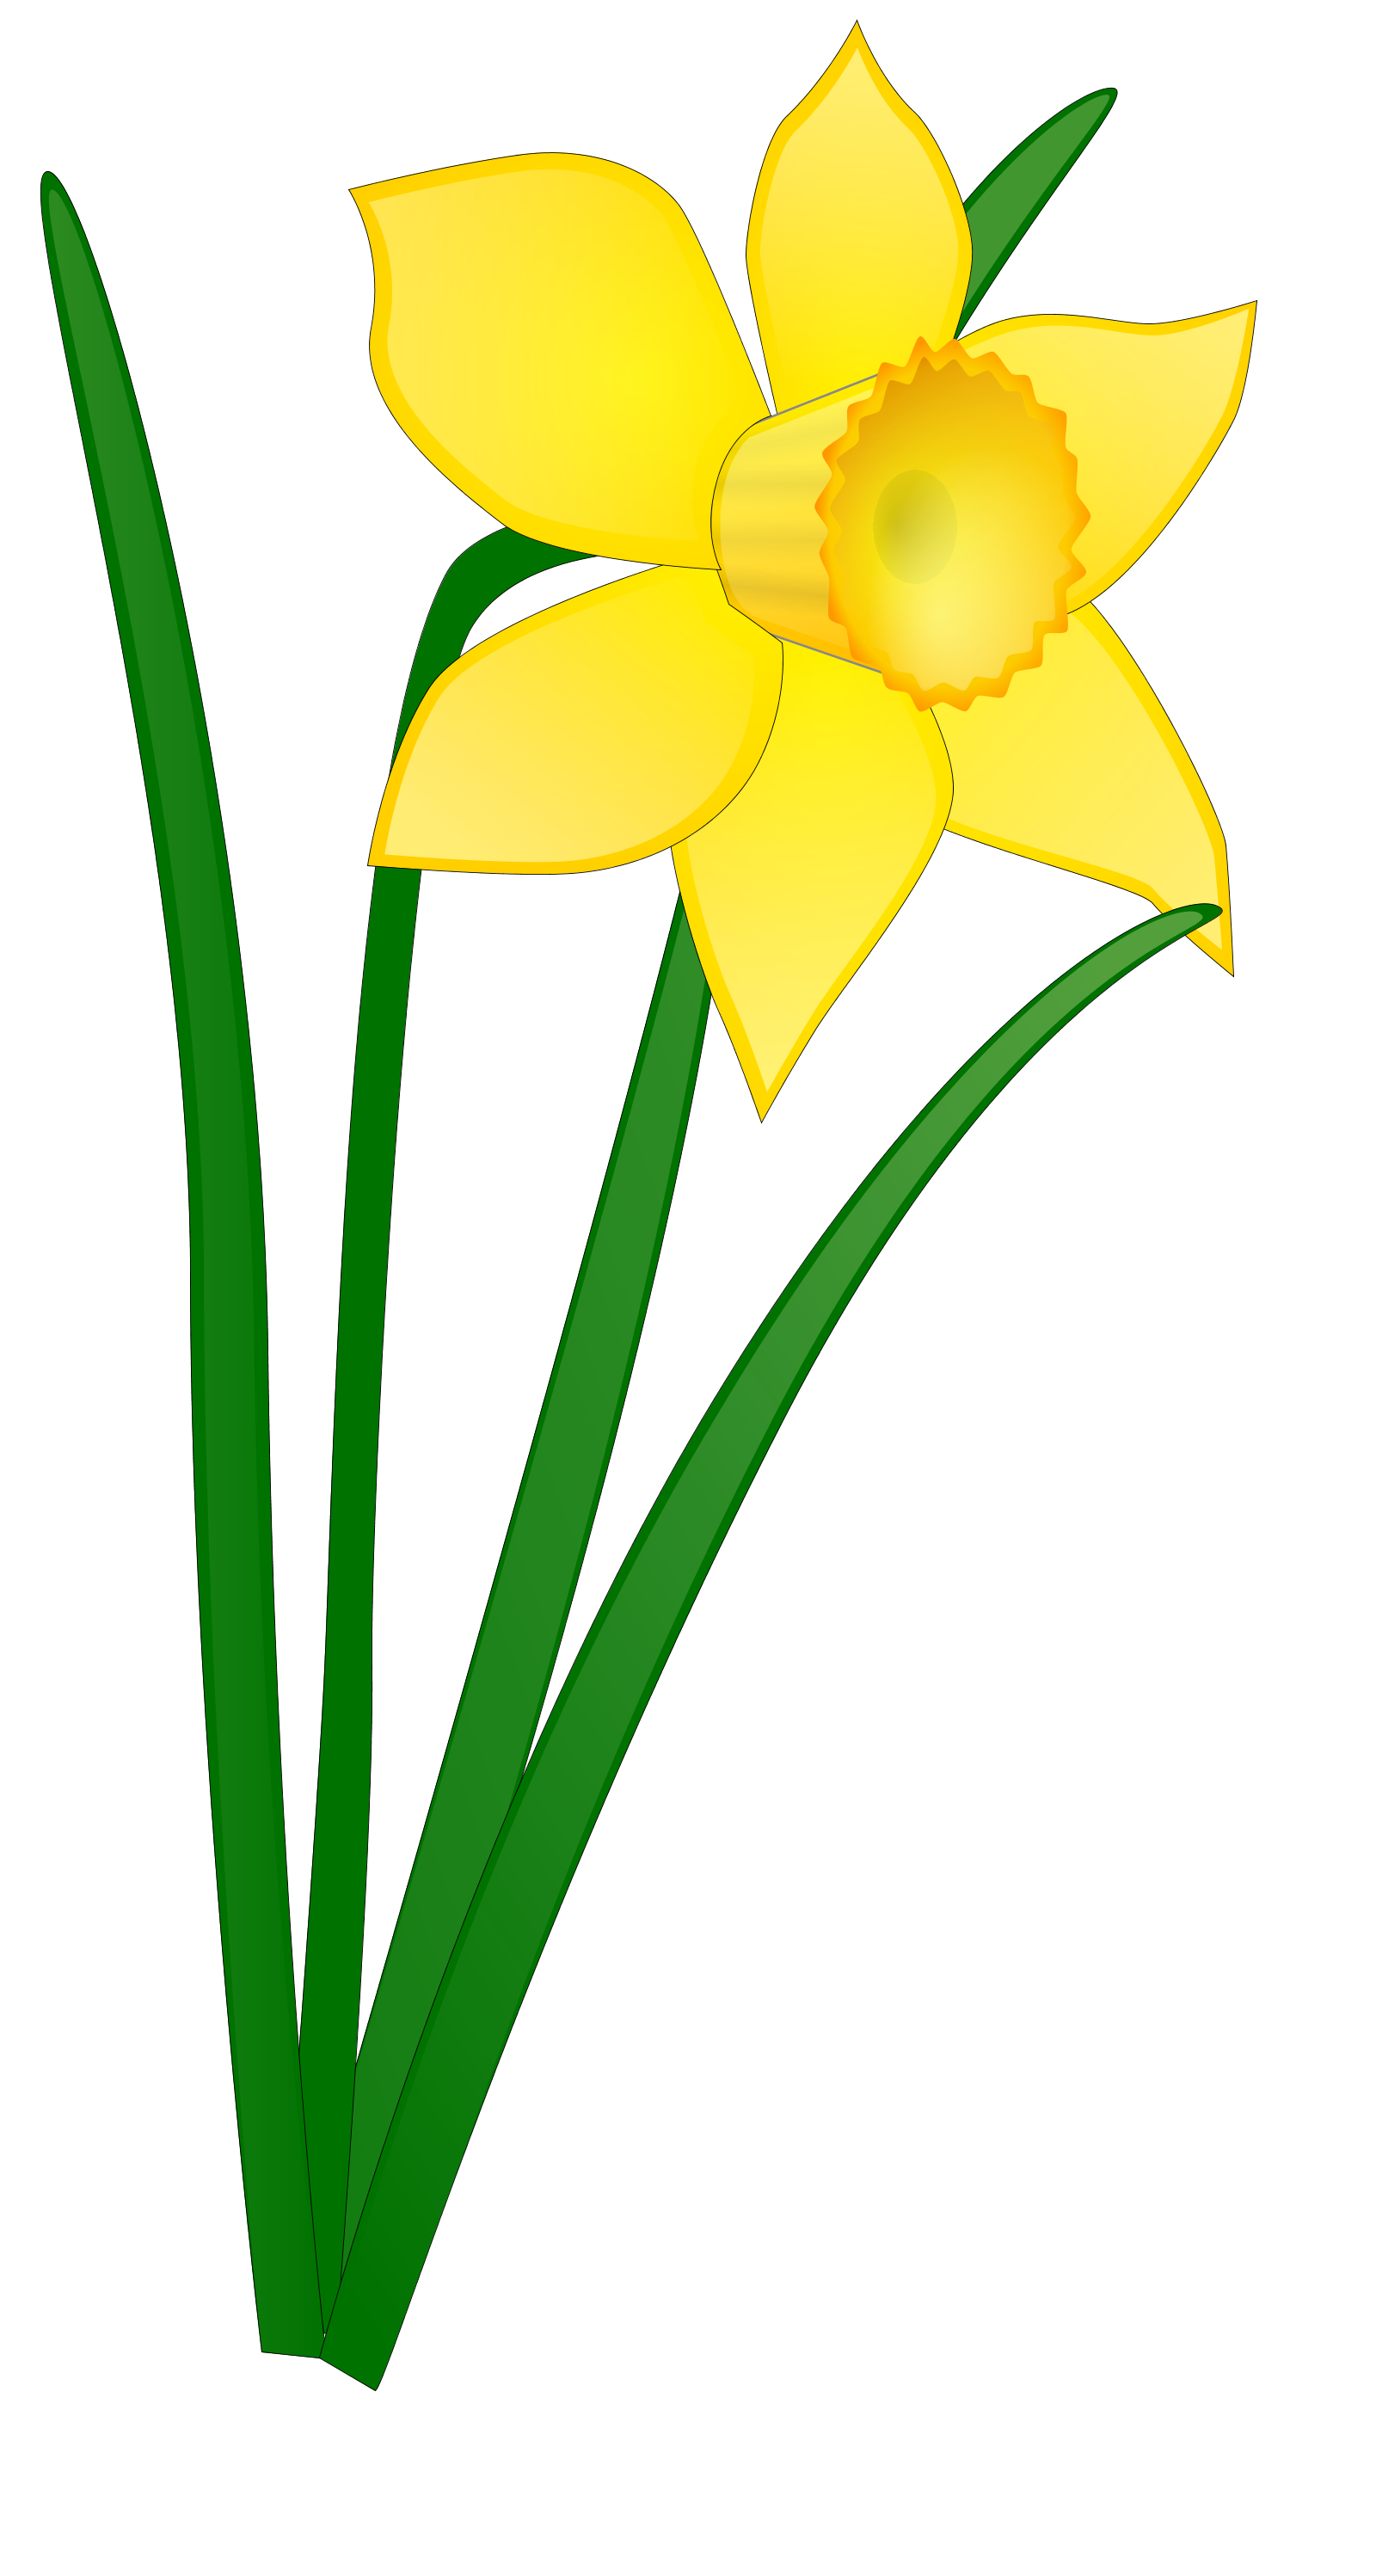 Tall flower clipart clip free library Daffodil Flower Clip Art | Clipart Panda - Free Clipart Images clip free library